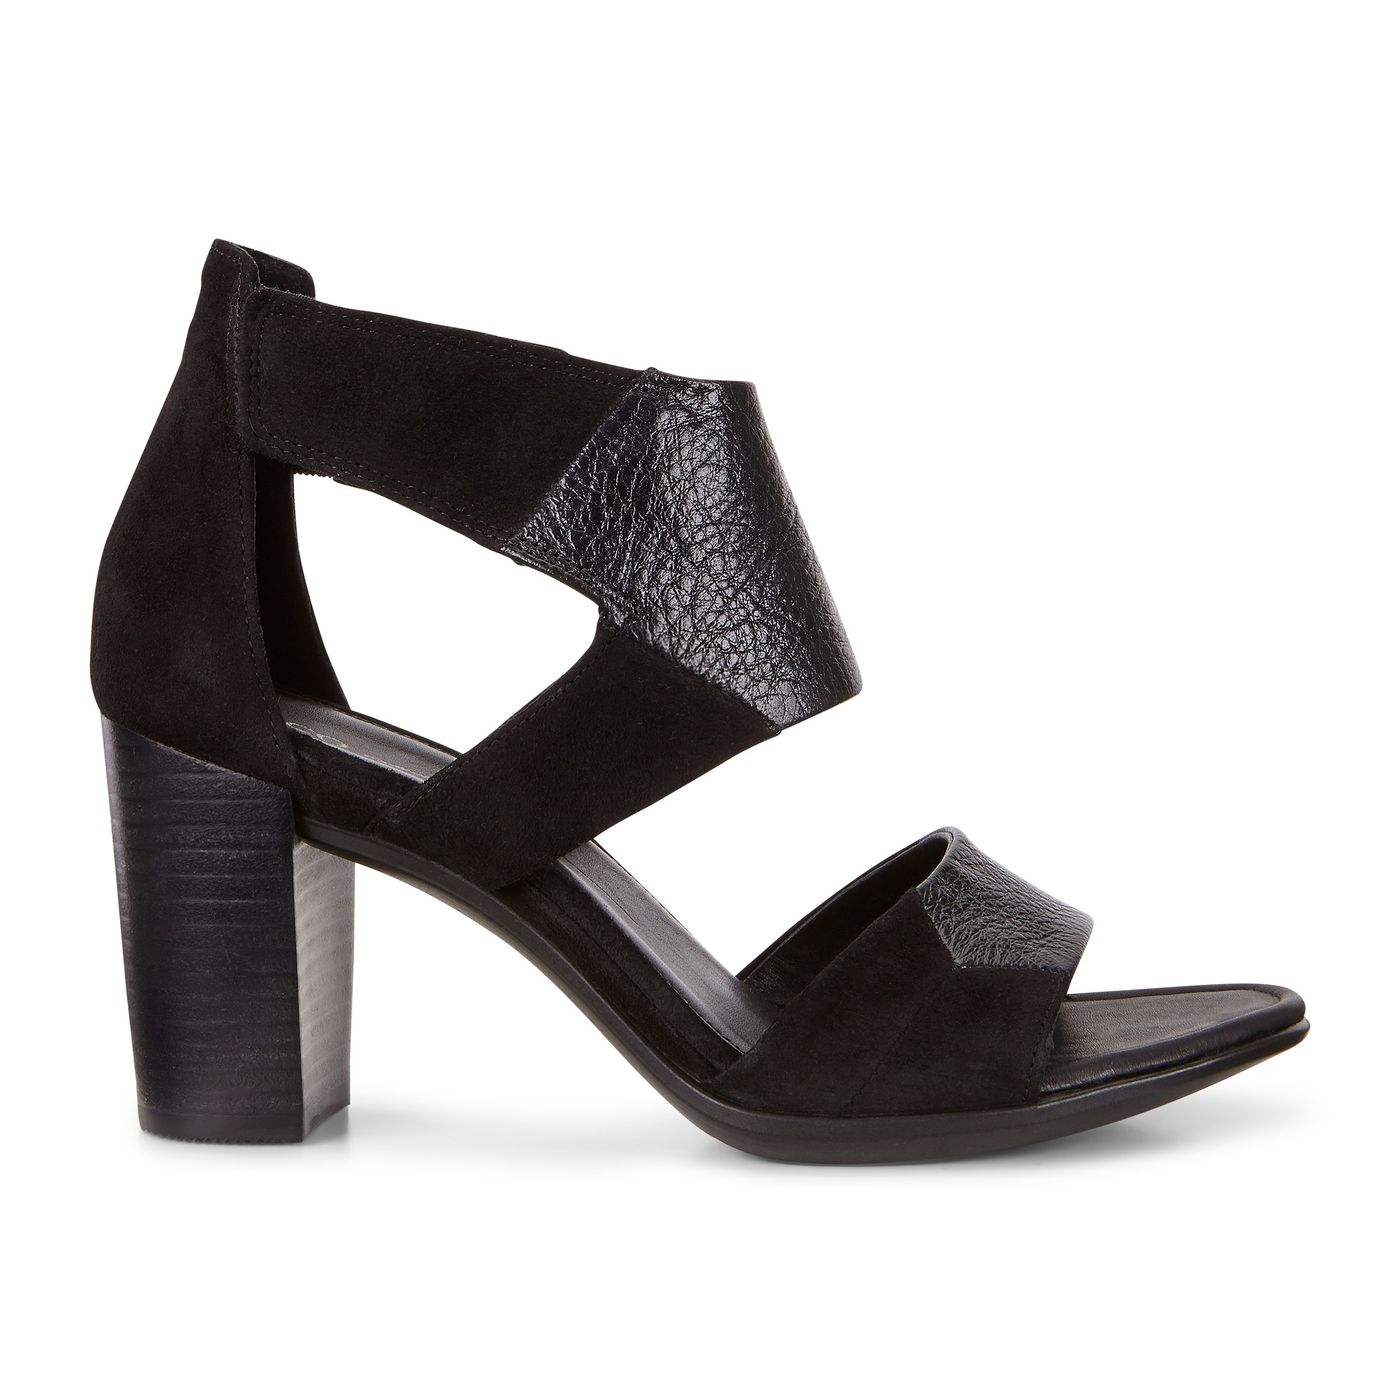 ECCO Womens Mule Sandals Size 365 6 Black Leather Strapy Wedge Heel Sandal